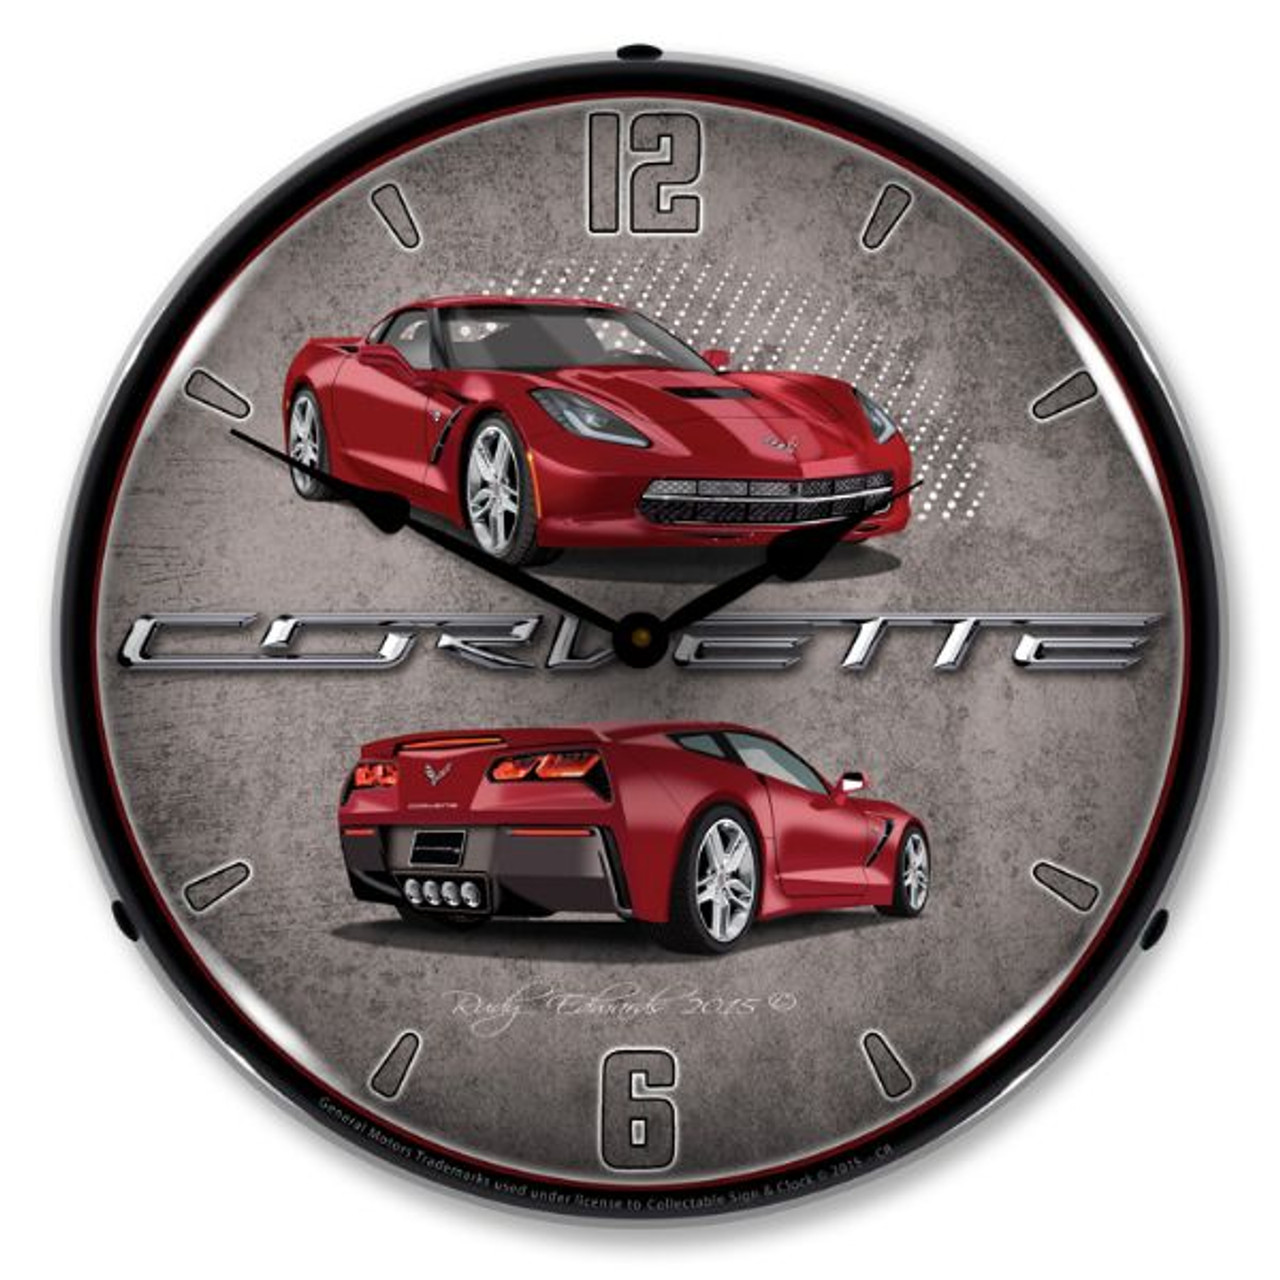 C7 Corvette Crystal Red Lighted Wall Clock 14 x 14 Inches